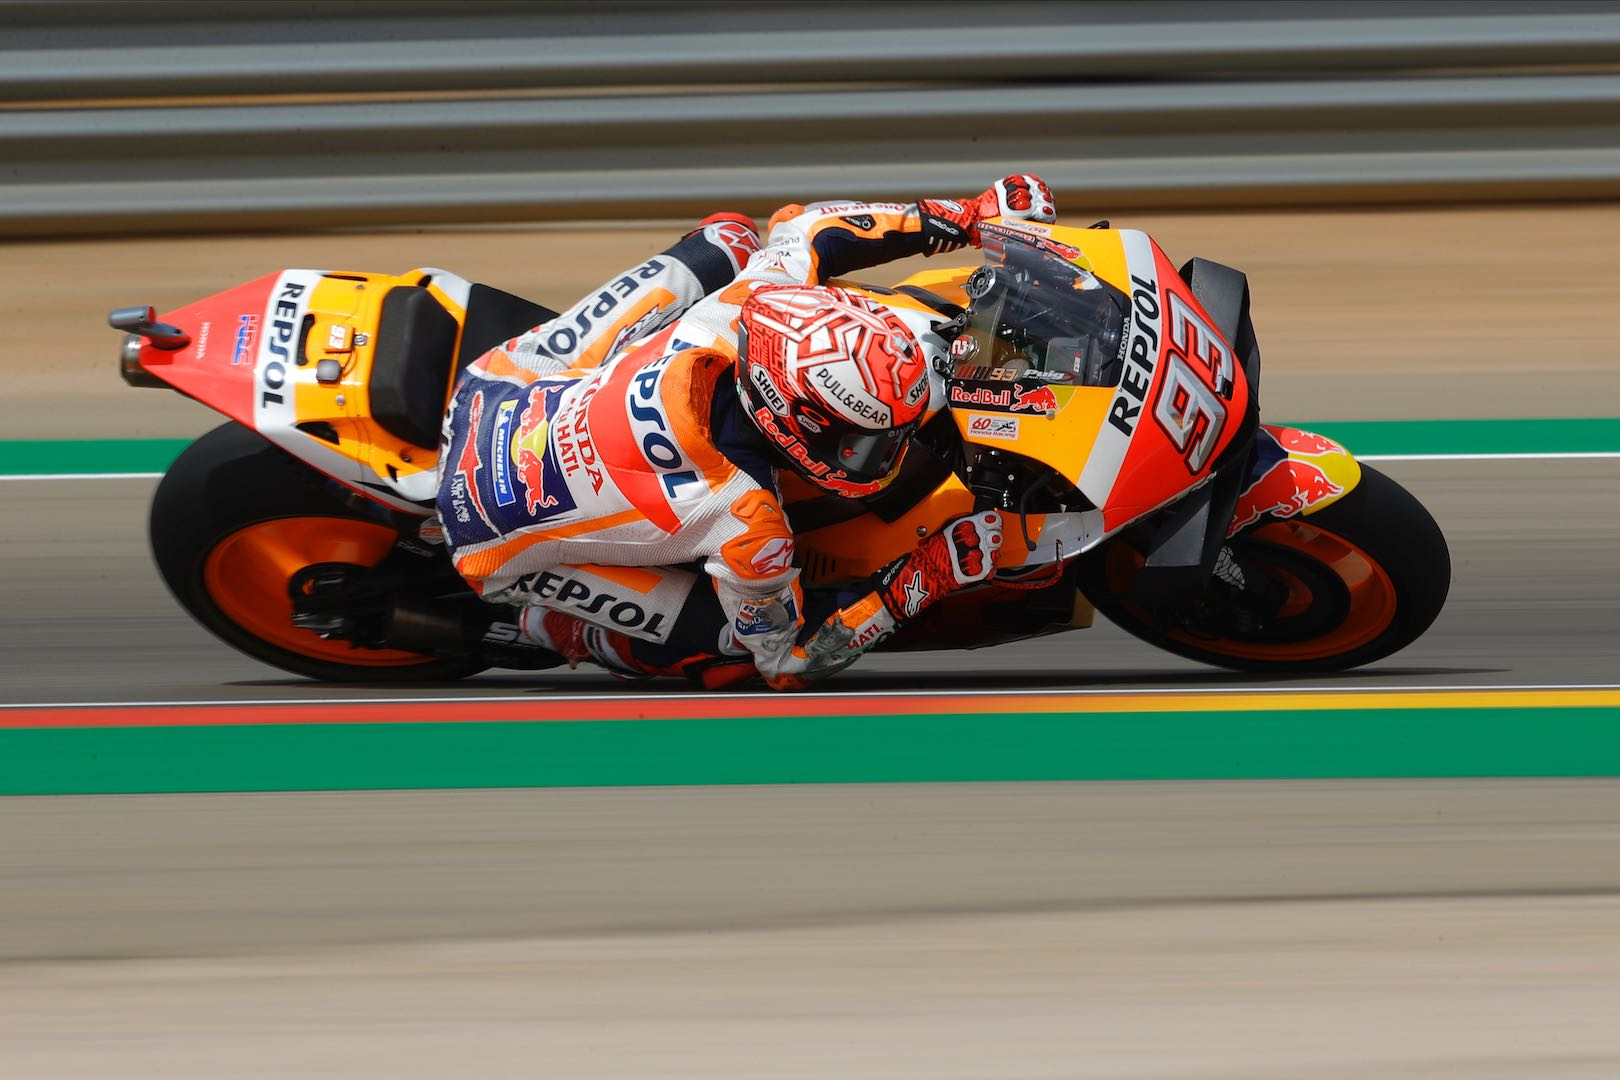 Marquez Tops Aragon MotoGP Friday Practice by 1.1 Seconds